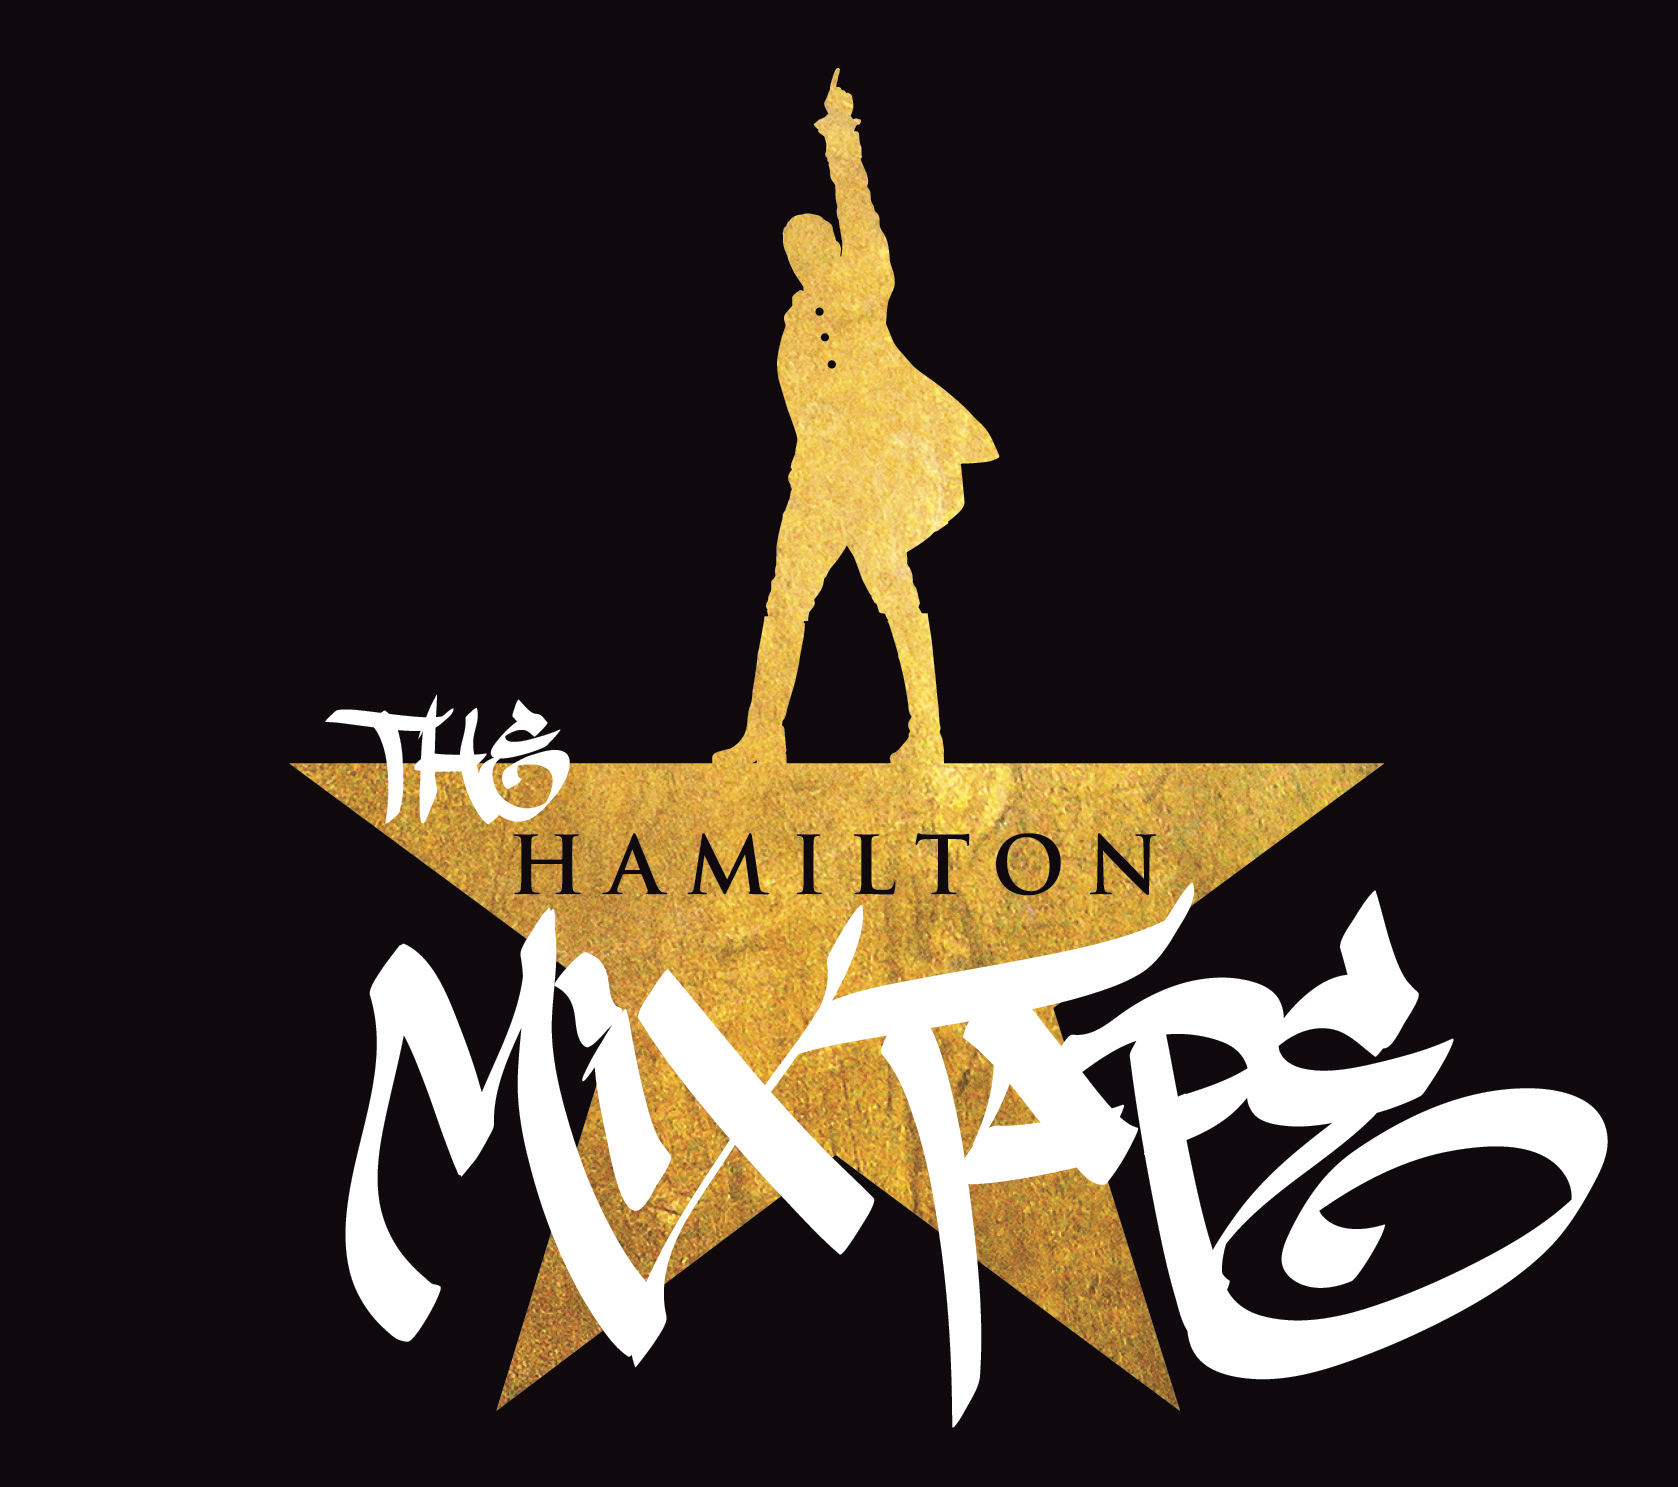 "This CD cover image released by Atlantic Records shows ""The Hamilton Mixtape."" The 23-track ""Hamilton Mixtape,"" set for release Friday, features covers by such artists as Usher, Kelly Clarkson, Nas, Ben Folds, Alicia Keys, Ashanti, John Legend, Sia, Common, Wiz Khalifa, Queen Latifah, The Roots, Jill Scott and Busta Rhymes. (Atlantic Records via AP)"